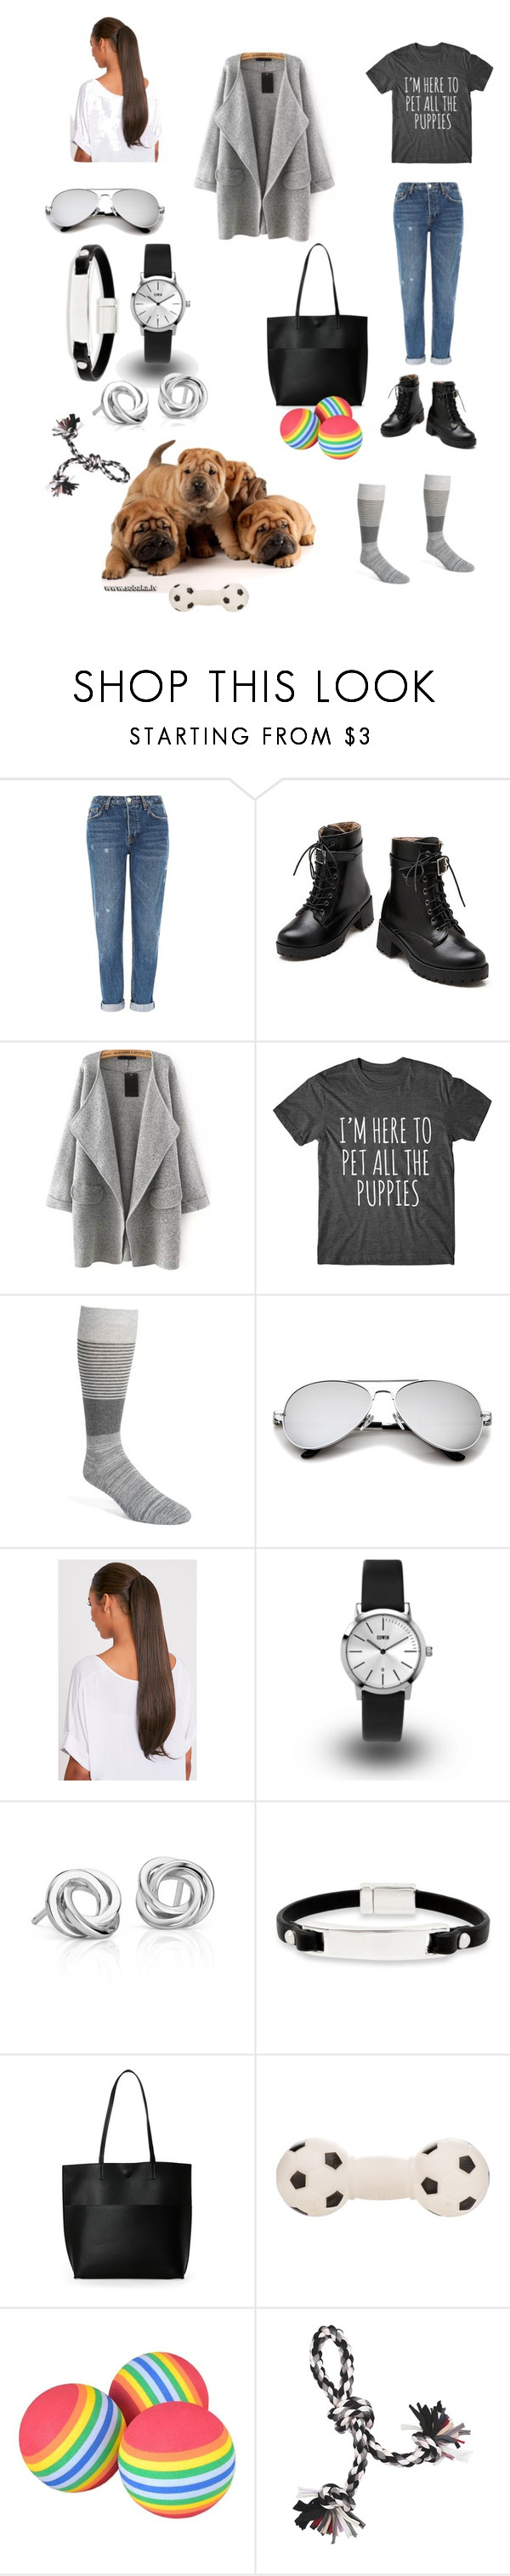 """Here for the Puppies!"" by triciapico on Polyvore featuring Topshop, Calibrate, KENNY, Blue Nile, Kenneth Cole and Street Level"